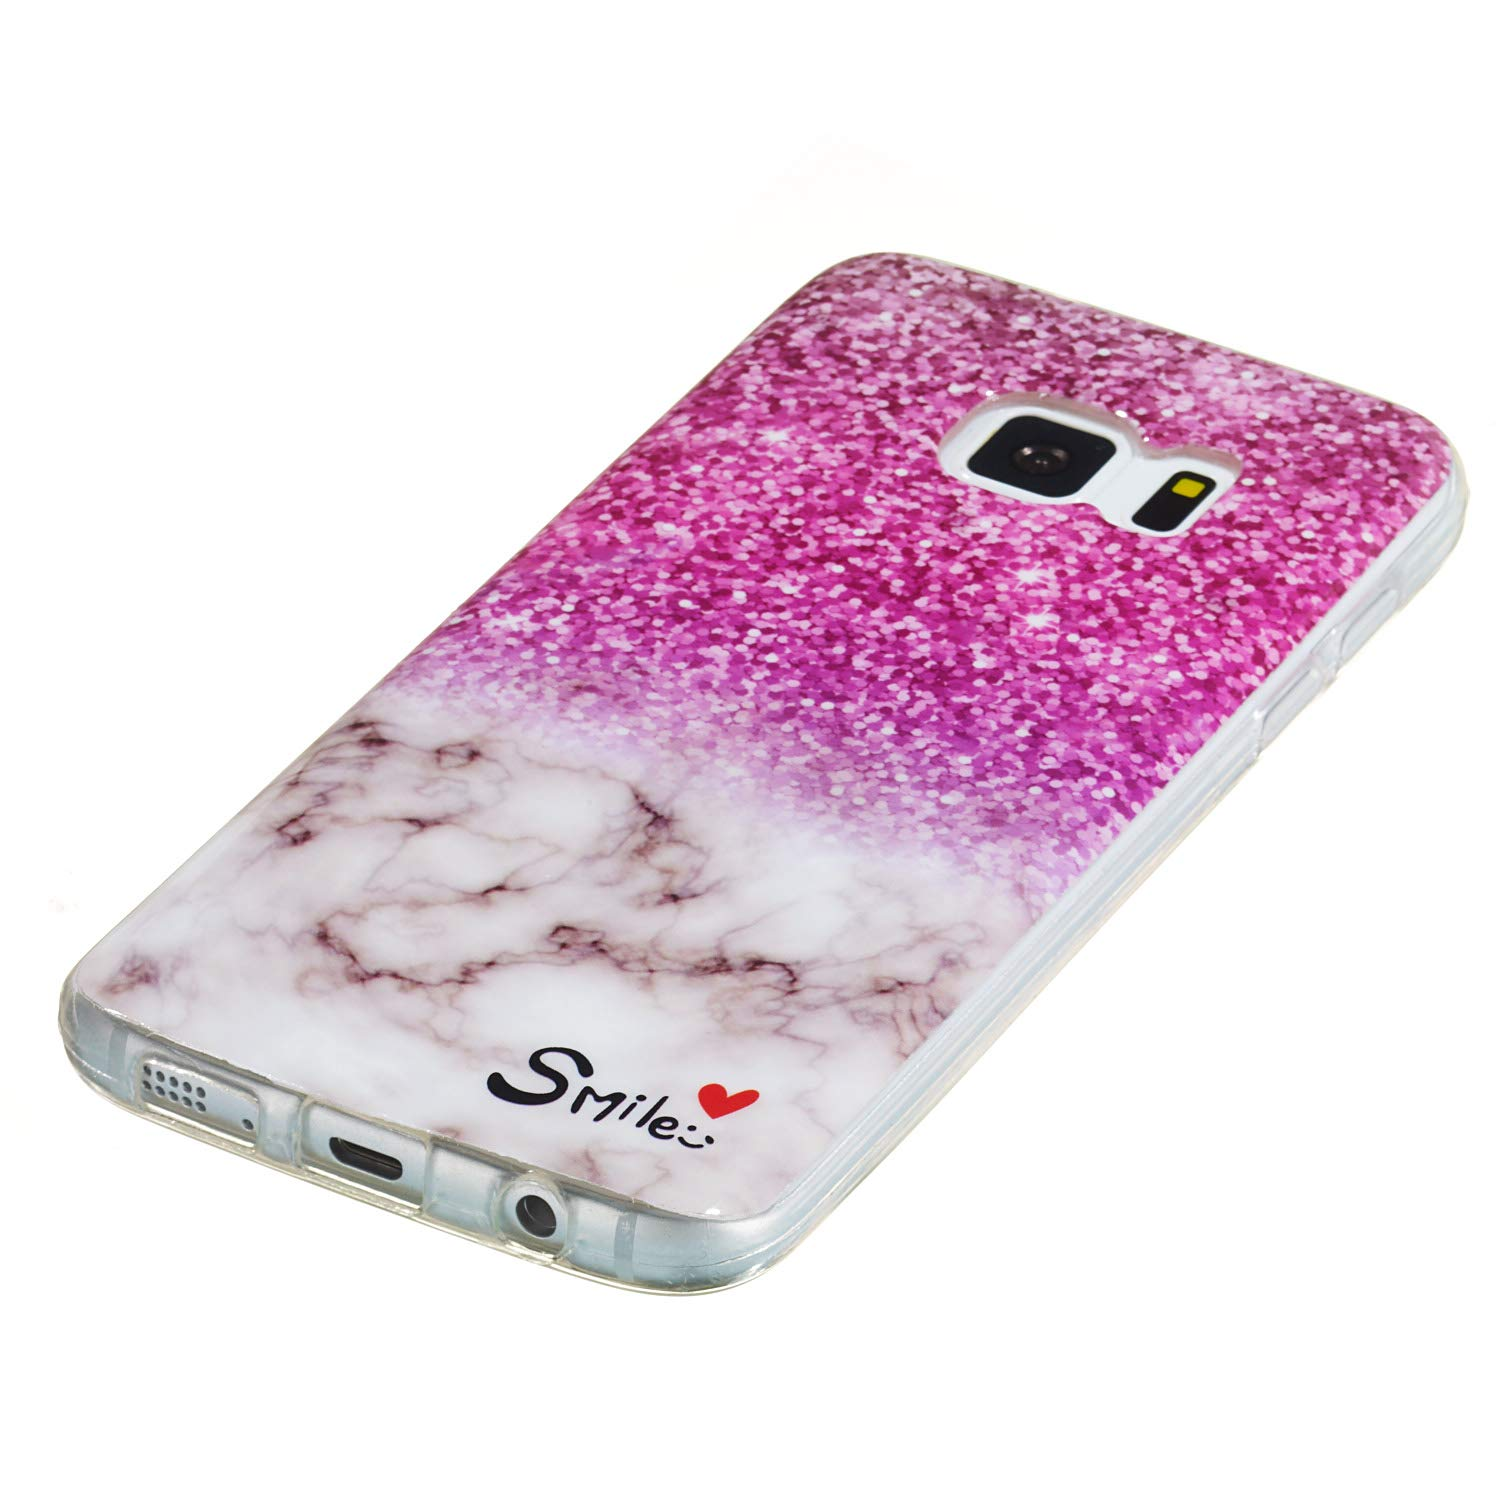 DAMONDY 3D Shiny Marble Pattern Hybrid Back Soft TPU Ultra-Thin Shock Absorption Slim Protective Case Phone Cover for Samsung Galaxy S7 2016-purple Amber Galaxy S7 Case